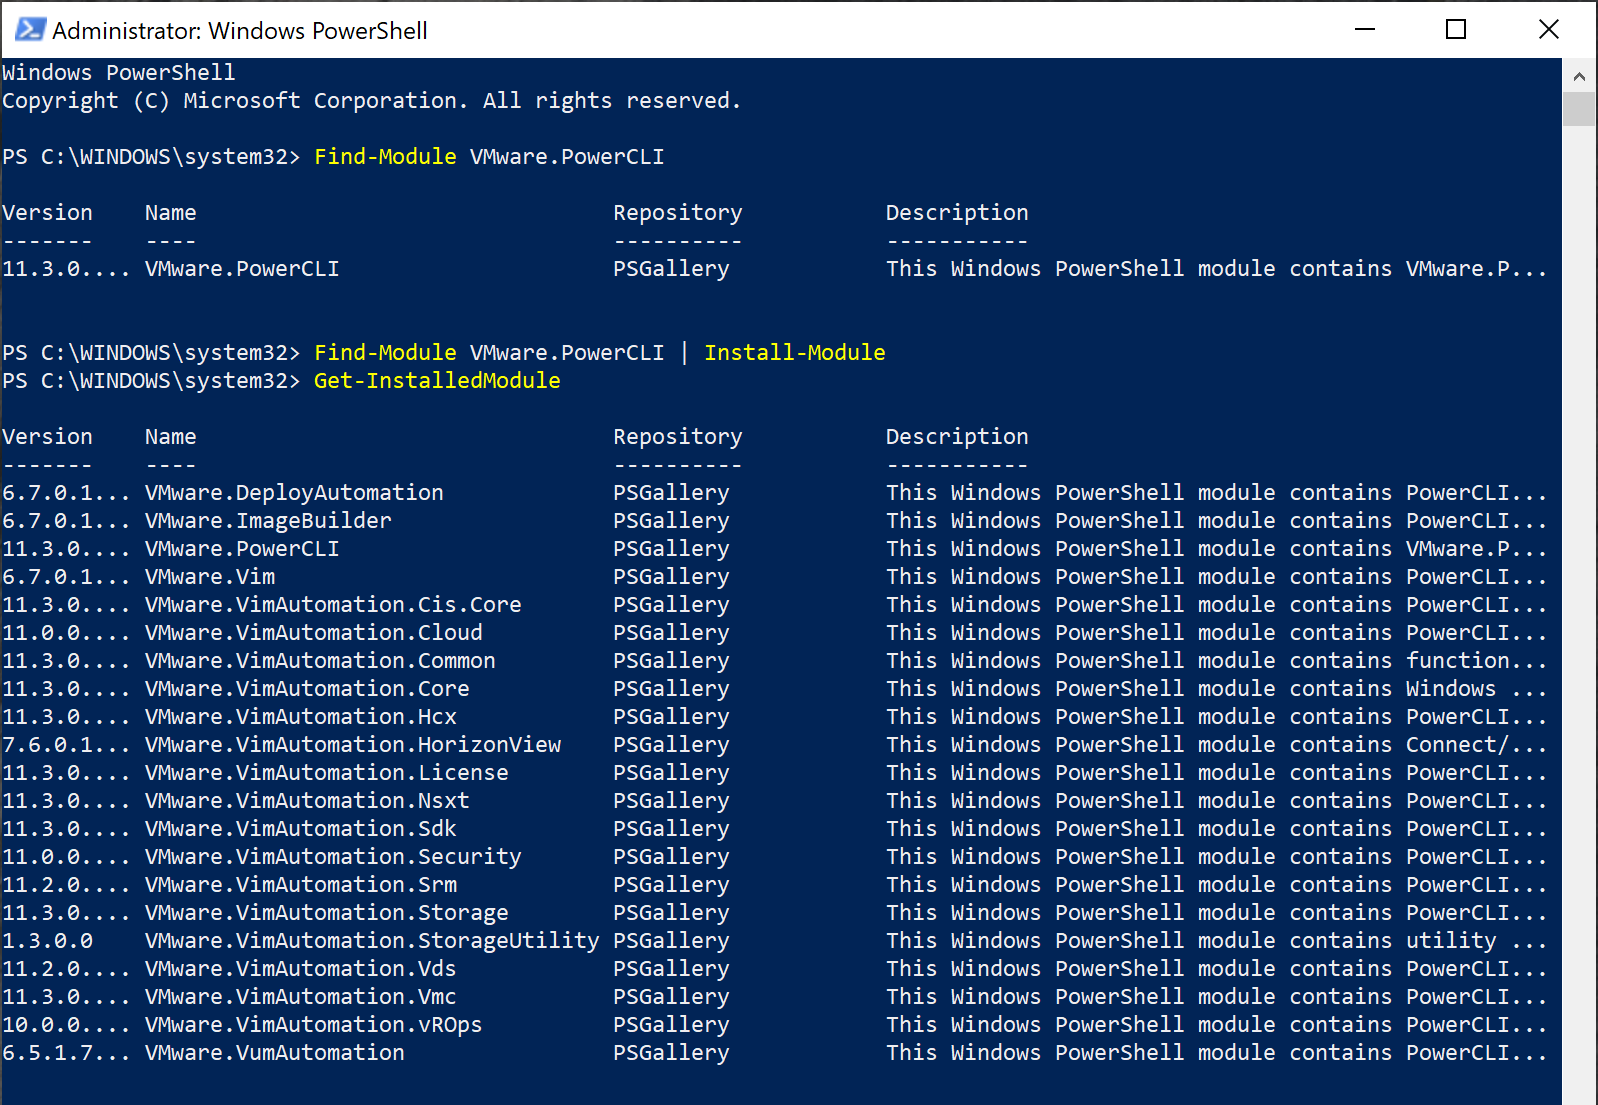 Finding modules installed from a PSRepository